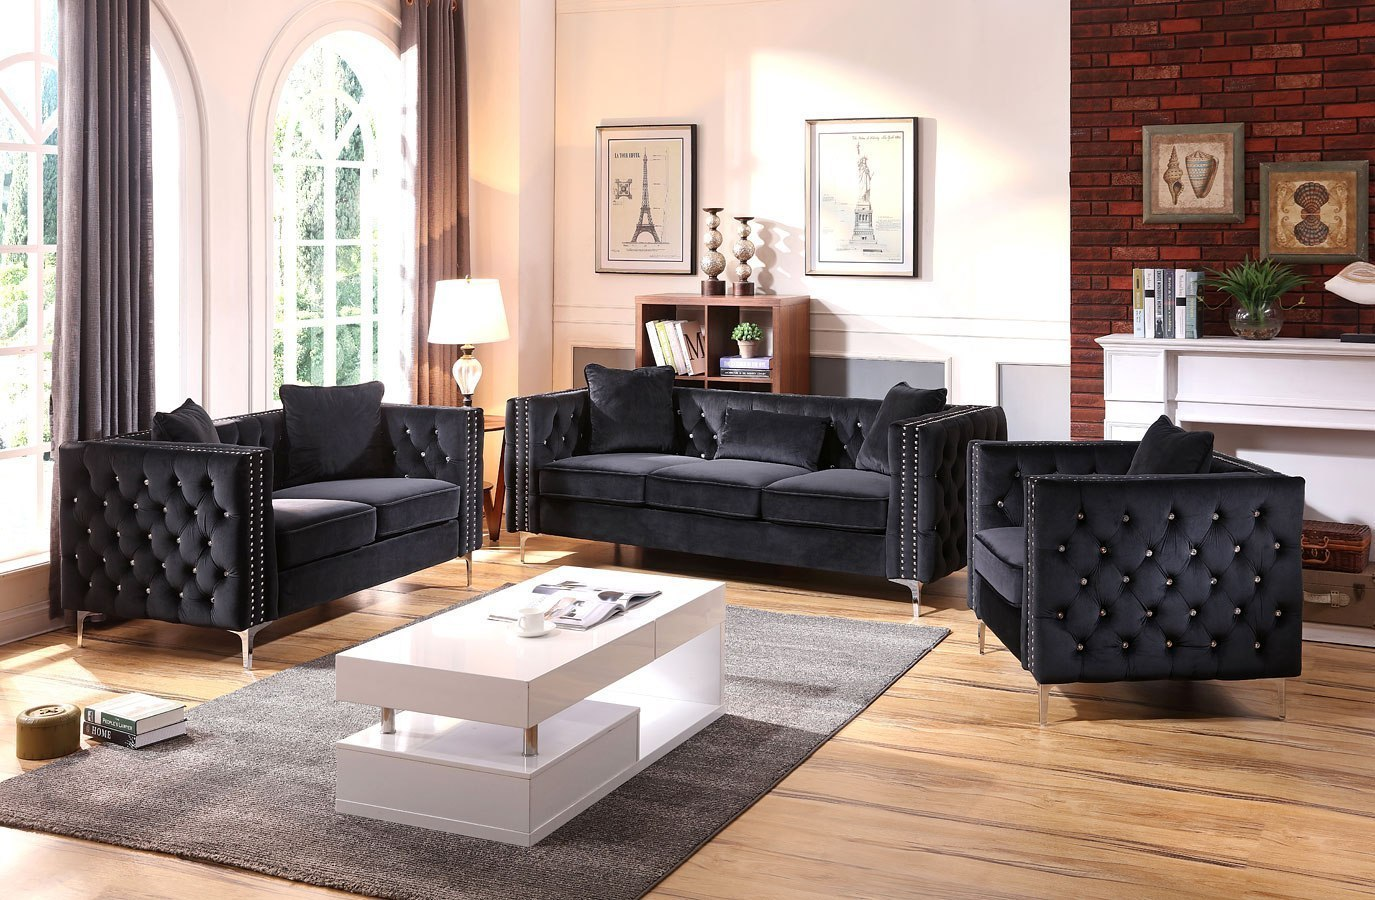 Amy\'s living room set (Black)